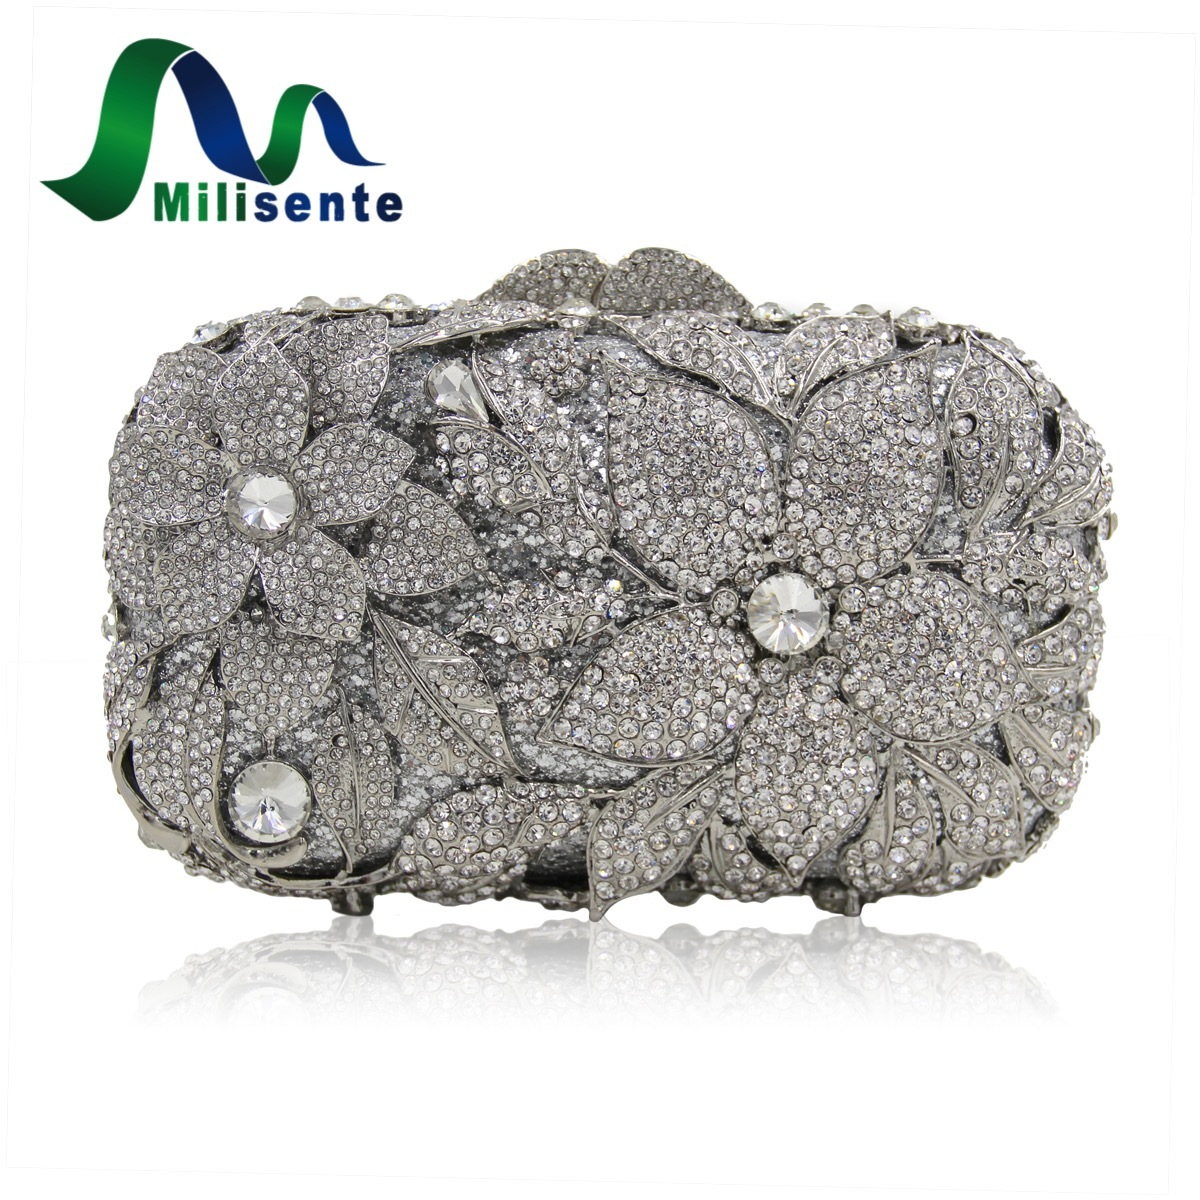 Milisente Top Class Crystal Bags Silver Flower Wedding Party Handbag Luxury Tote Bag Lady Clutch Evening Purse Short Chain milisente women luxury rhinestone clutch evening handbag ladies crystal wedding purses dinner party bag gold